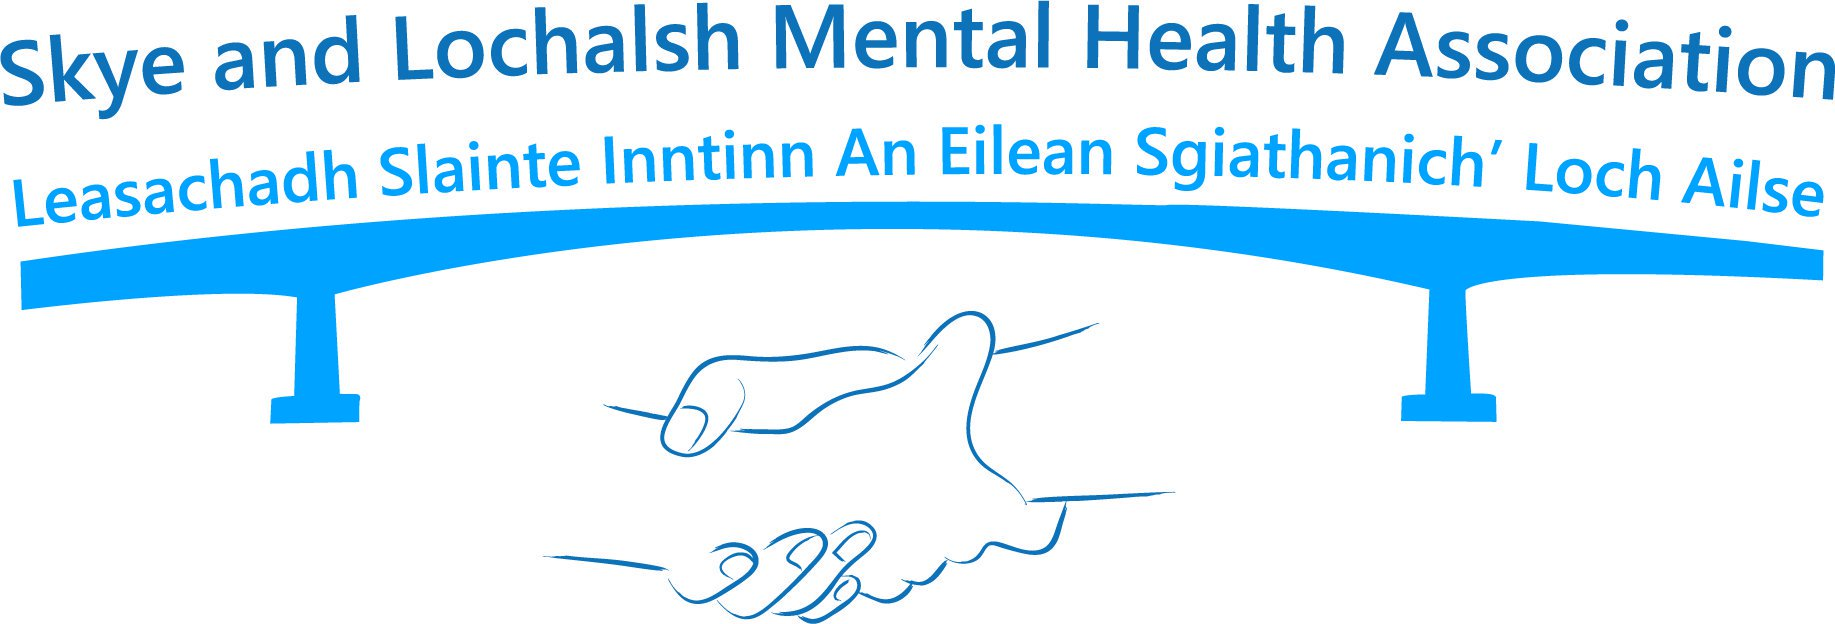 Skye and Lochalsh Mental Health Association